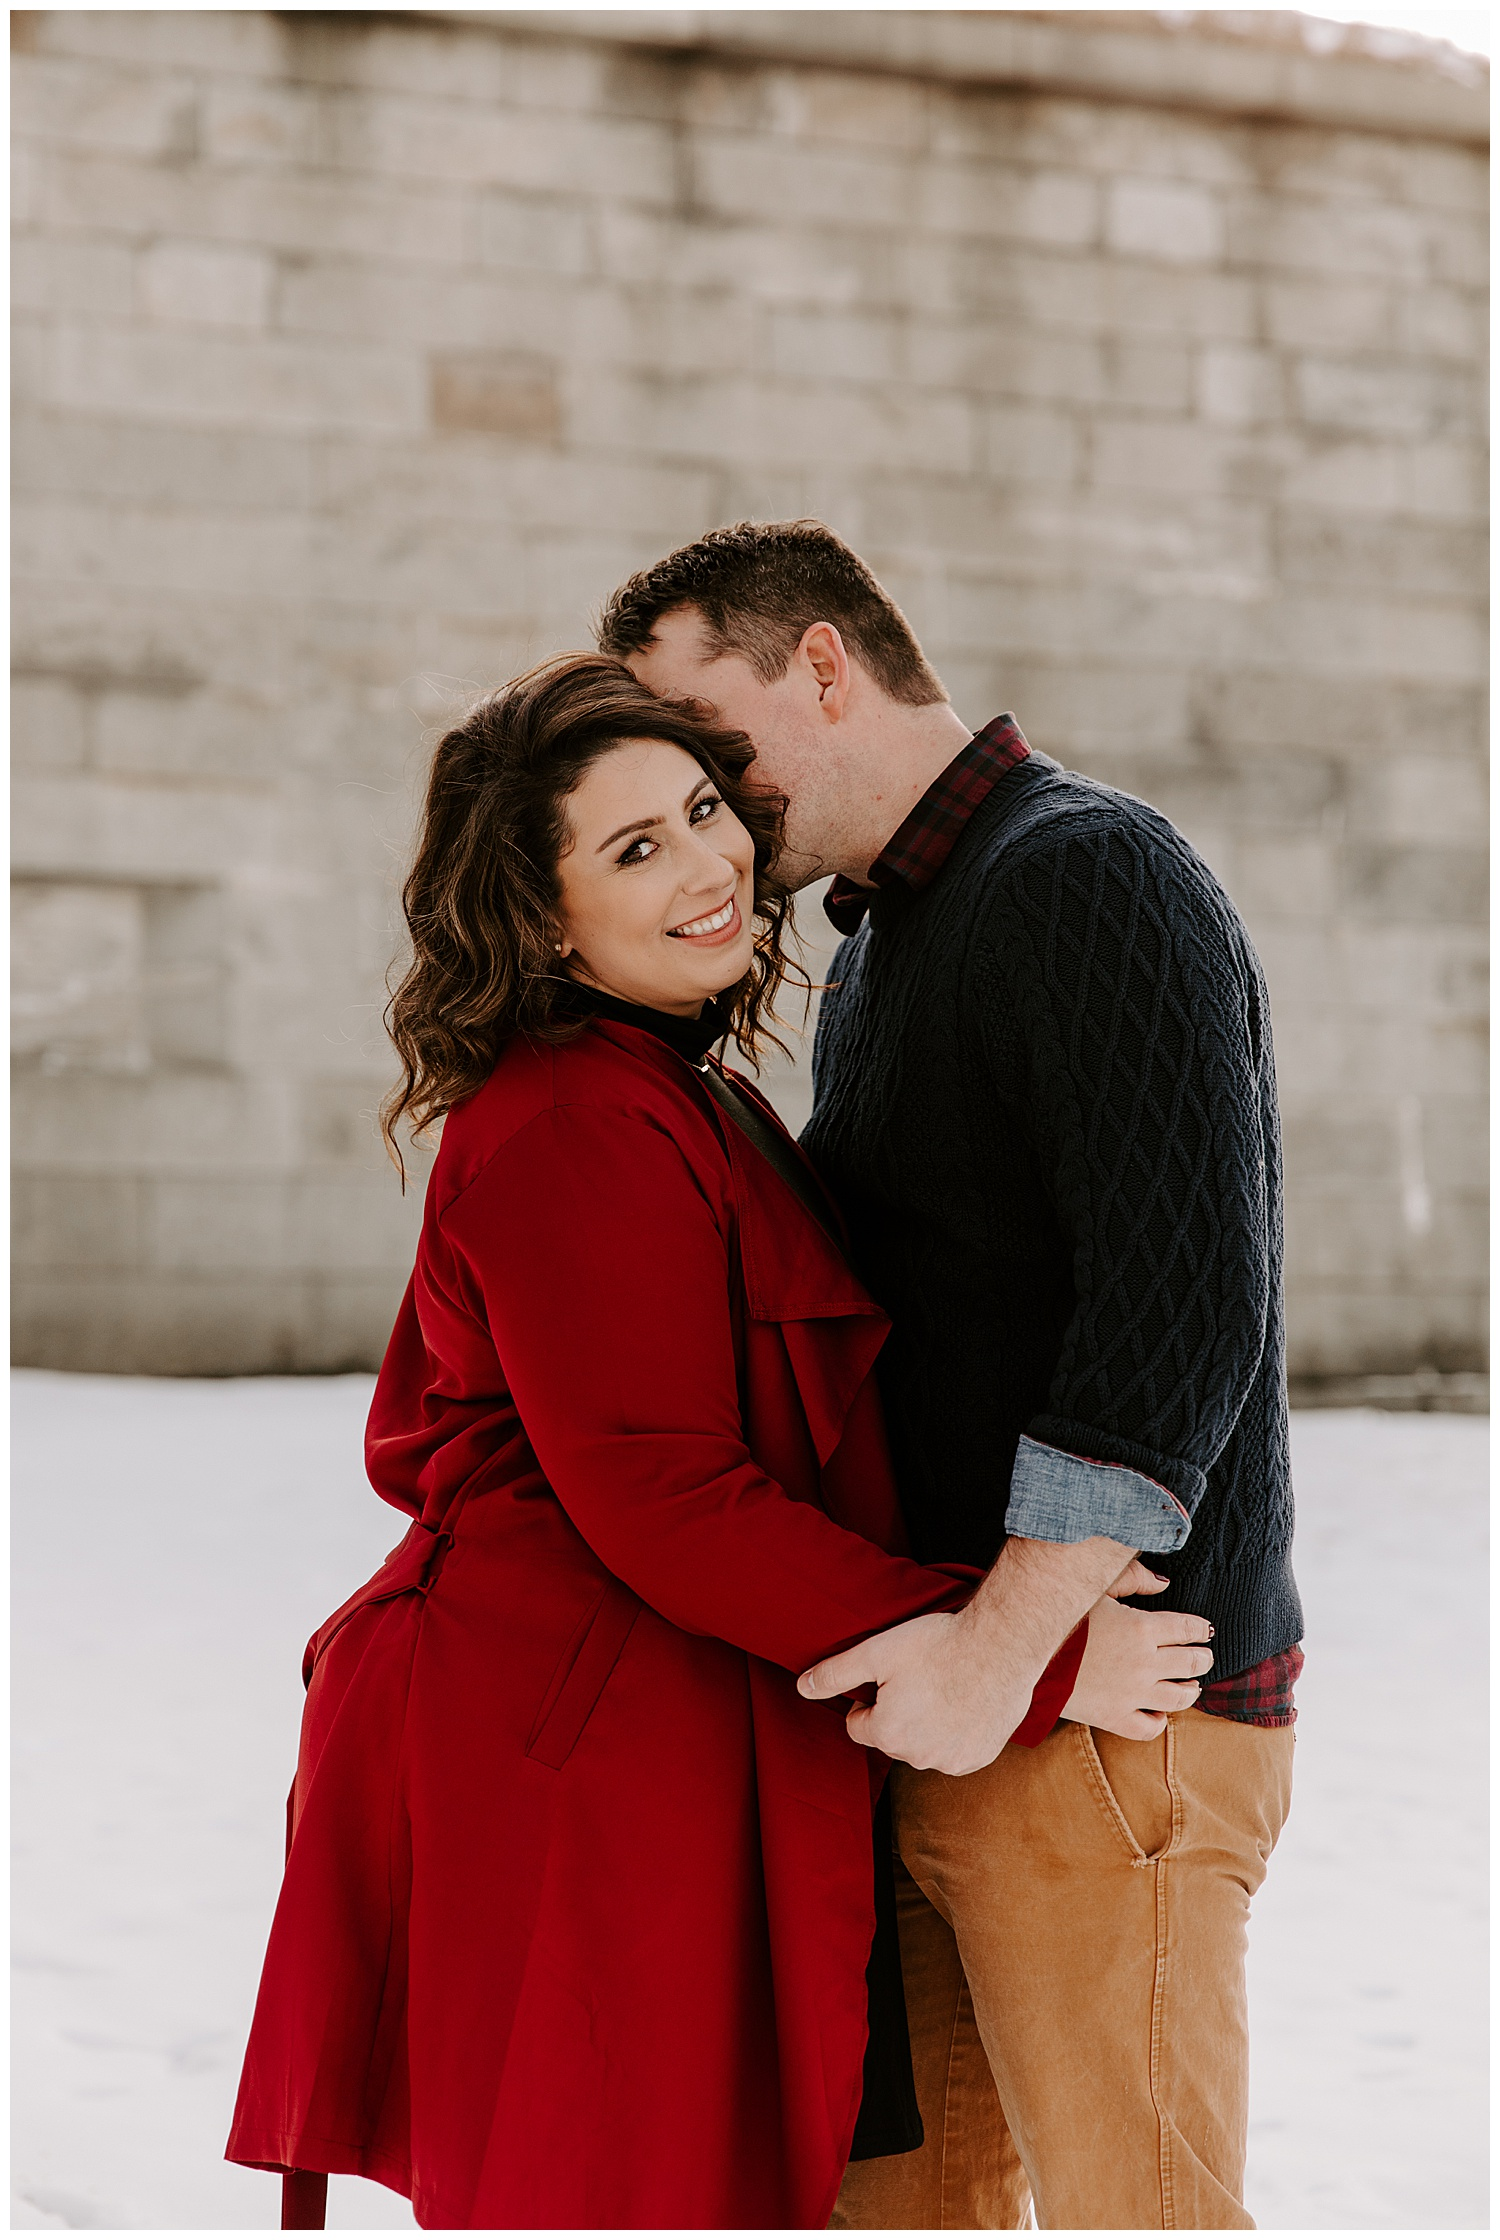 kevin-danielle-snow-winter-engagement-session-castle-island-boston01.jpg